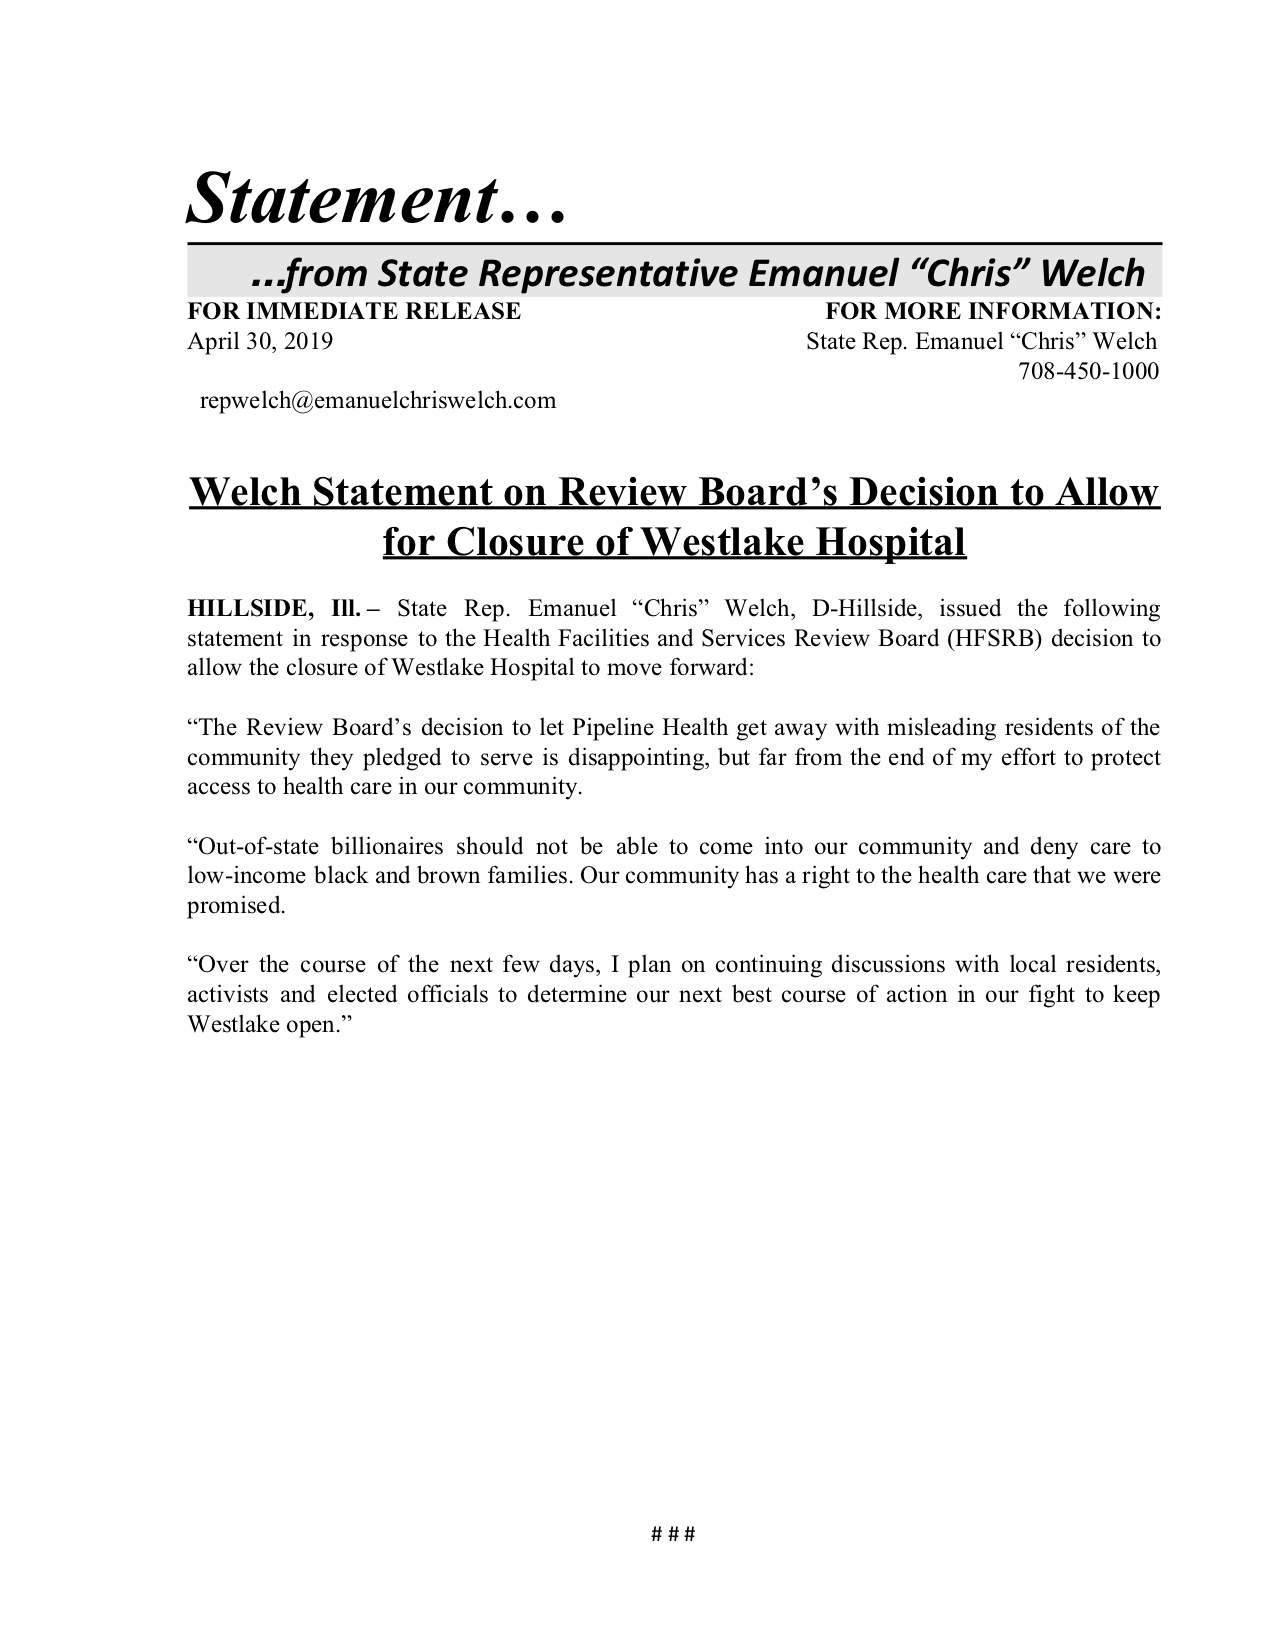 Welch Statement on Review Board's Decision to Allow for Closure of Westlake Hospital  (April 30, 2019)